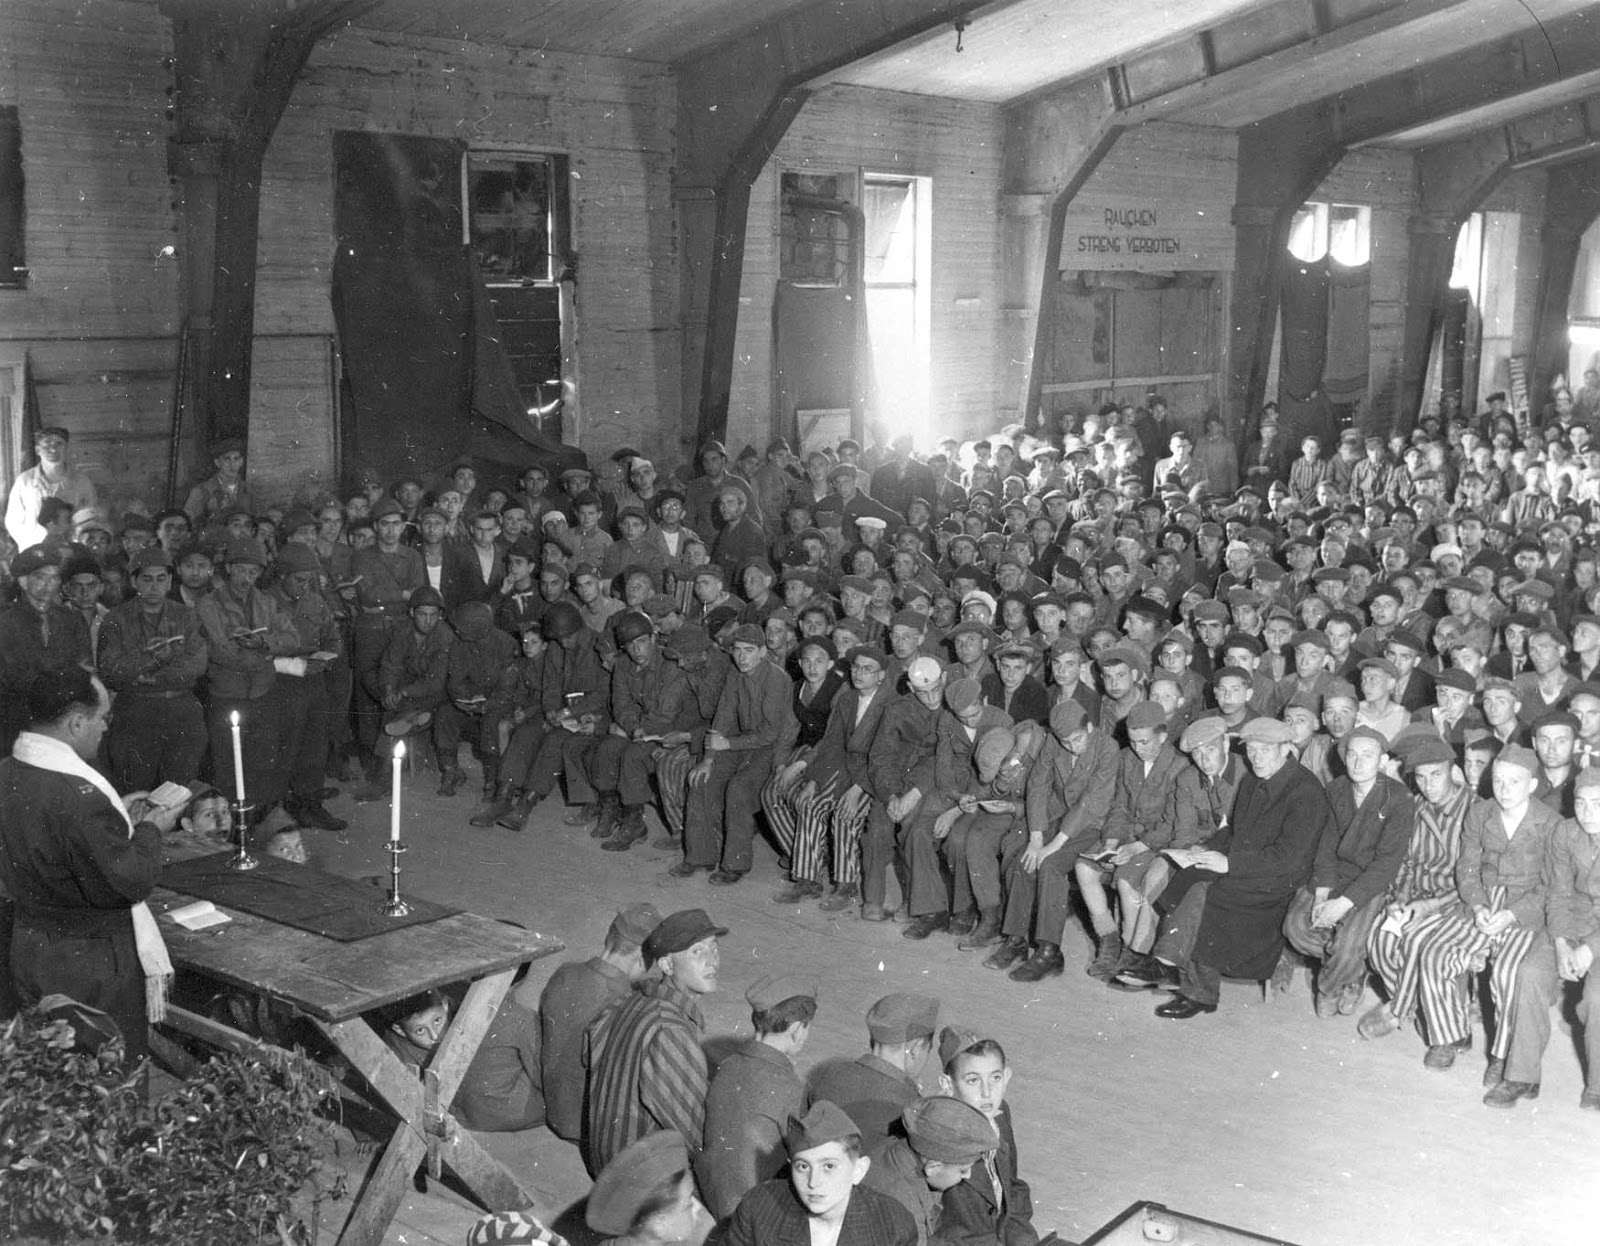 Rabbi Herschel Schacter leading the Shavuot prayer service for survivors in the Buchenwald camp in Germany in 1945